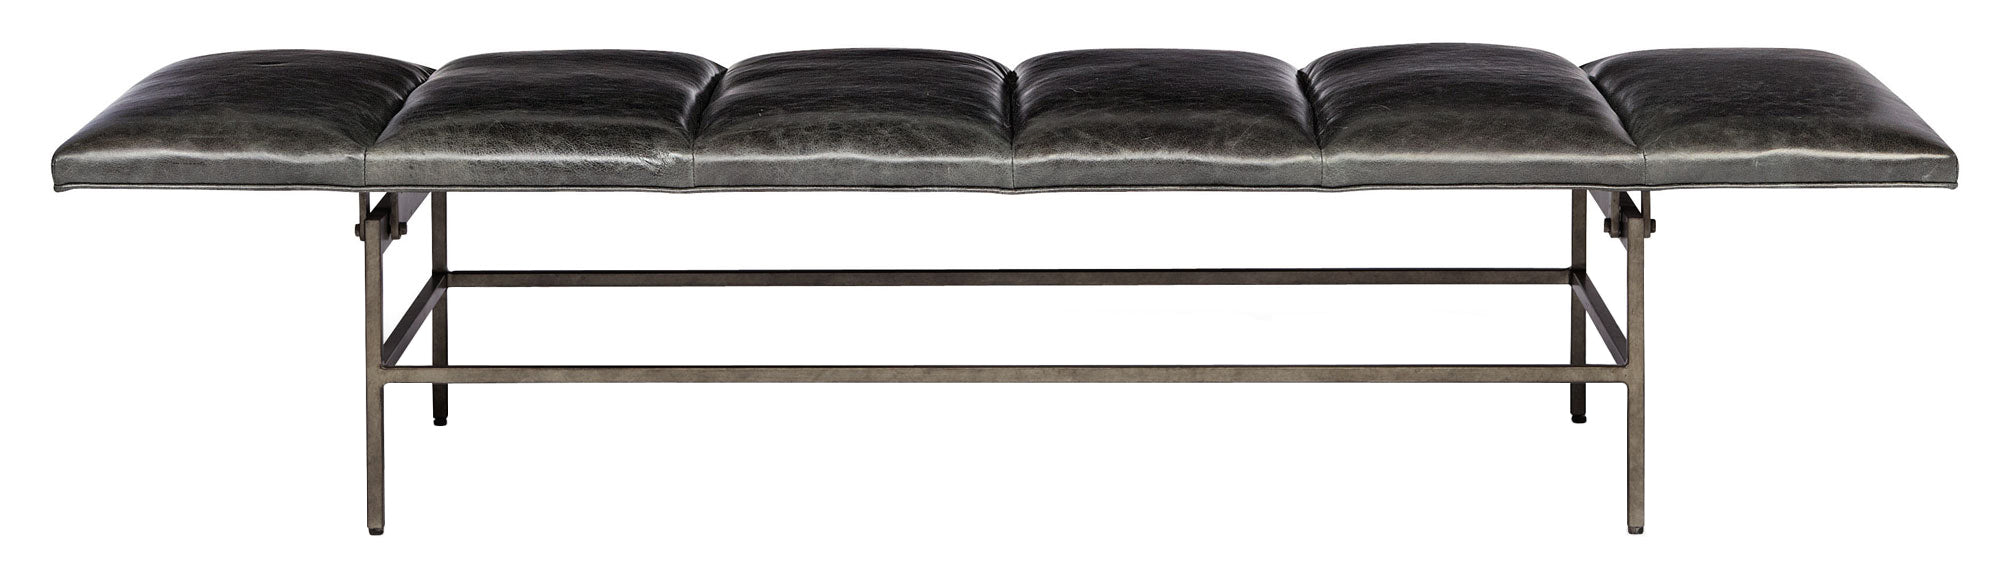 Ardmore Leather Channel Bench